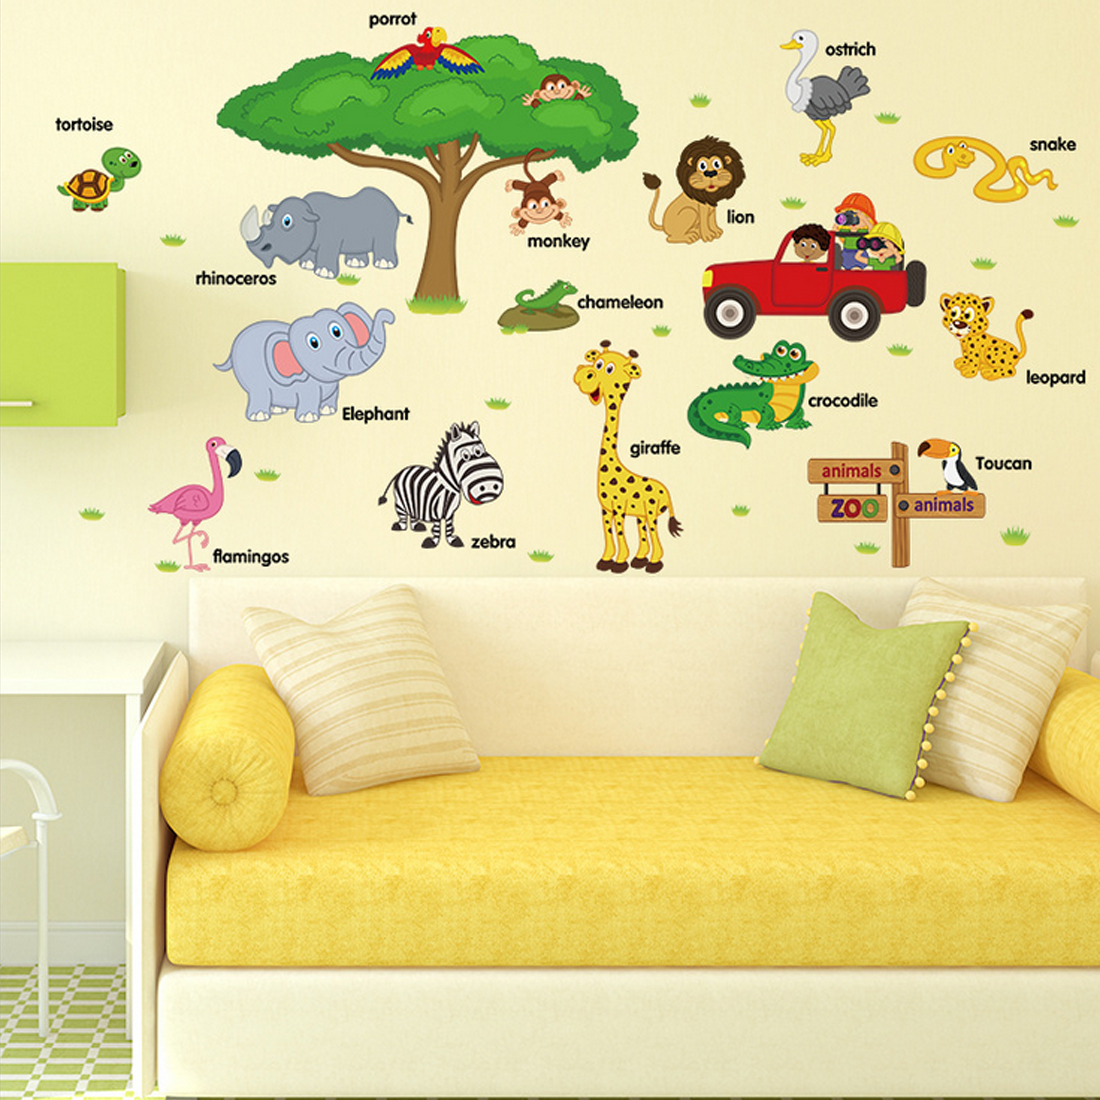 Nice Jungle Nursery Wall Decor Ideas - Art & Wall Decor - hecatalog.info